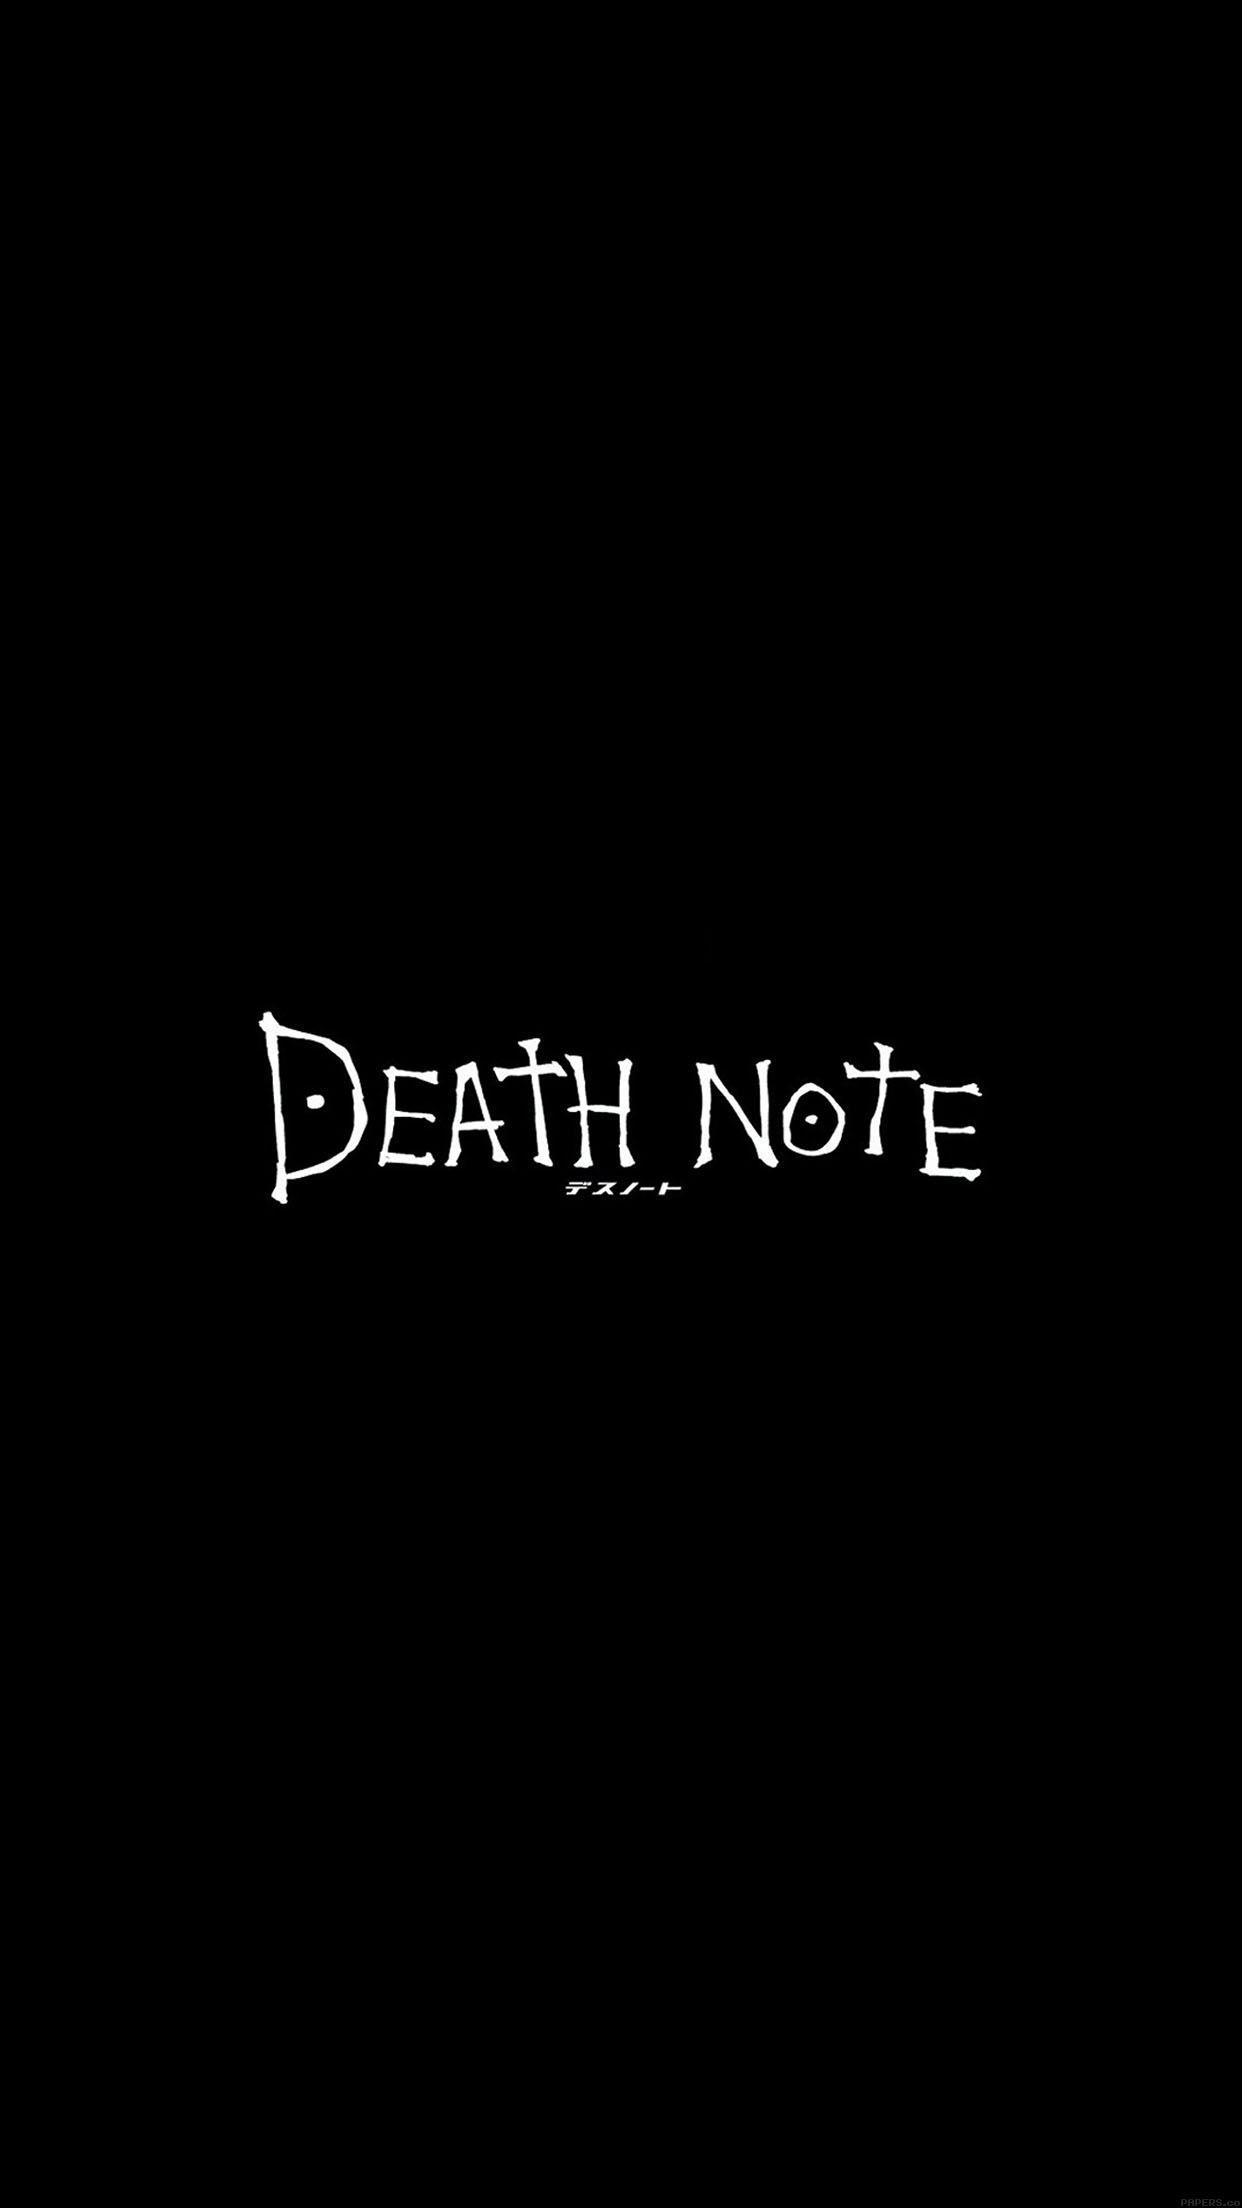 Iphone7papers Ac77 Wallpaper Death Note Cartoon Illust Minimal